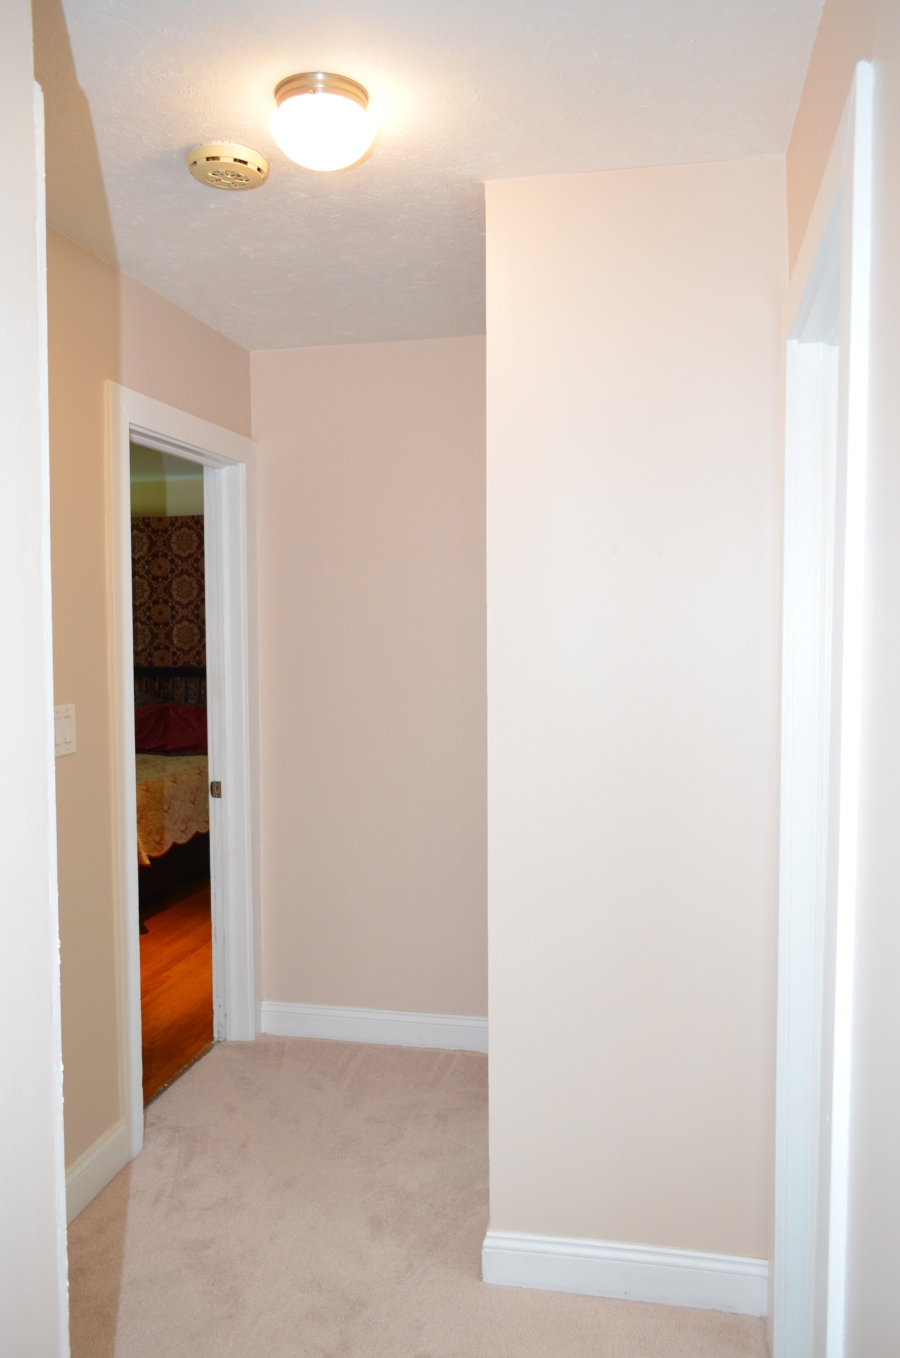 The main level hallway leading to the master bedroom (left).